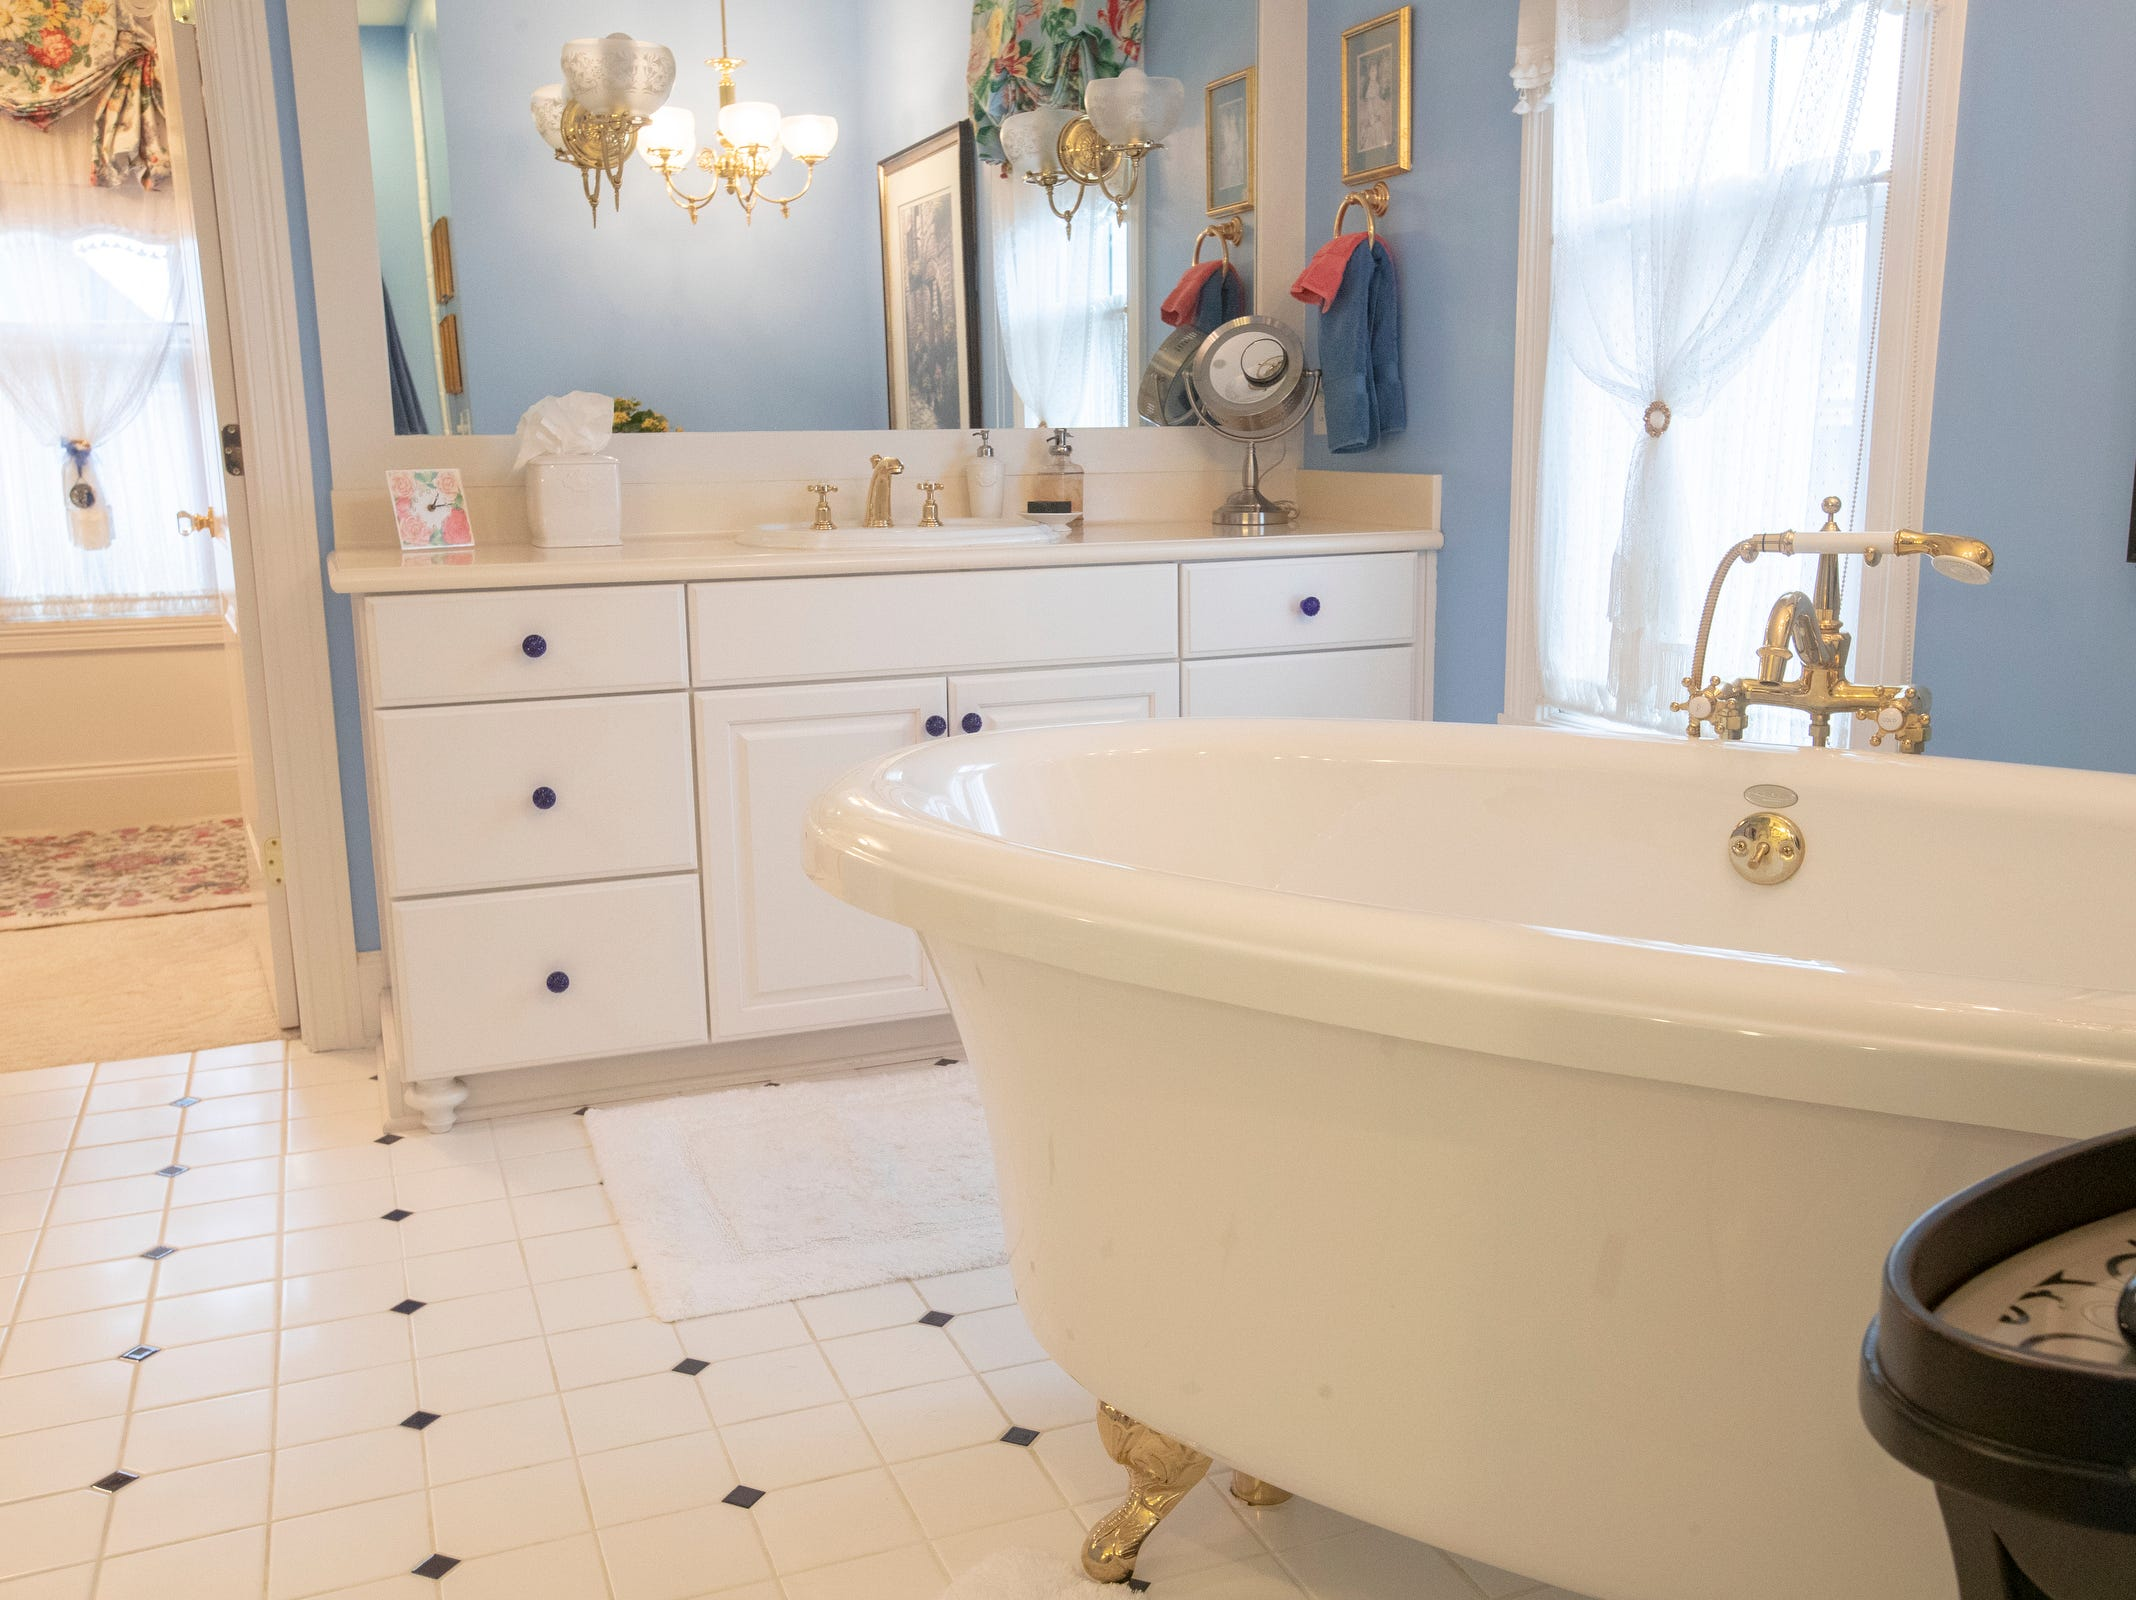 A free-standing bathtub in the master bathroom of a thirteen-year-old Victorian home in the Village of West Clay, Carmel, March 20, 2019. The house includes 16 rooms with five bedrooms, 8,348 square feet, and is listed at $1.275 million.